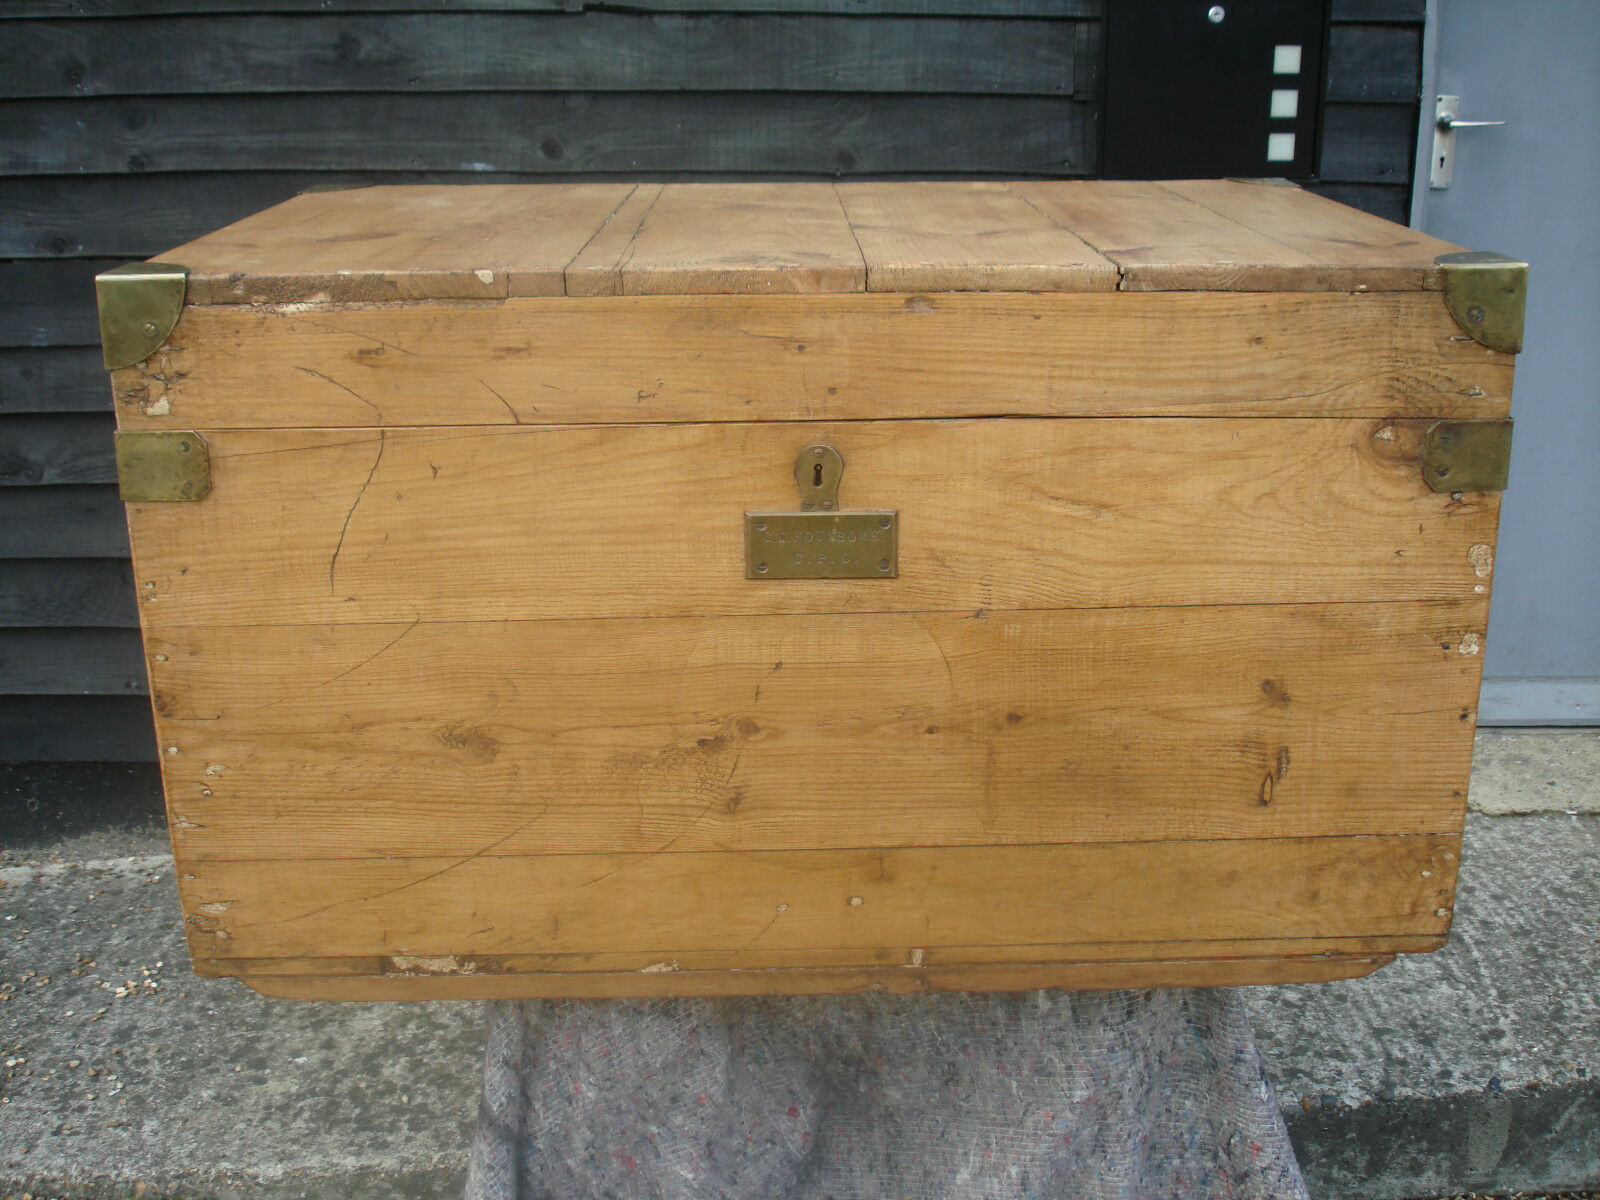 OUTSTANDING 19th CENTURY PINE LARGE BLANKET BOX TRUNK CAMPAIGN CHEST ANTIQUE